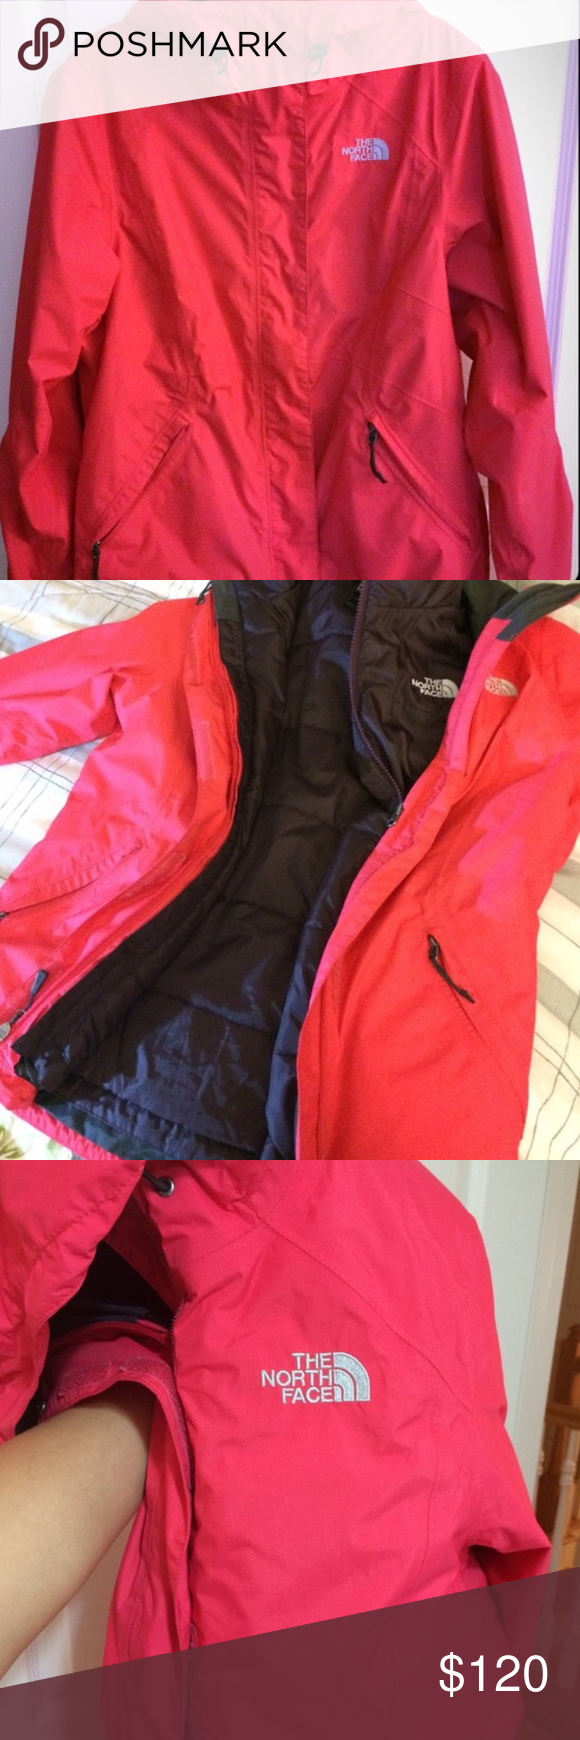 The North Face Hyvent 2 In 1 Ski Rain Jacket Clothes Design Fashion Trends Fashion [ 1740 x 580 Pixel ]